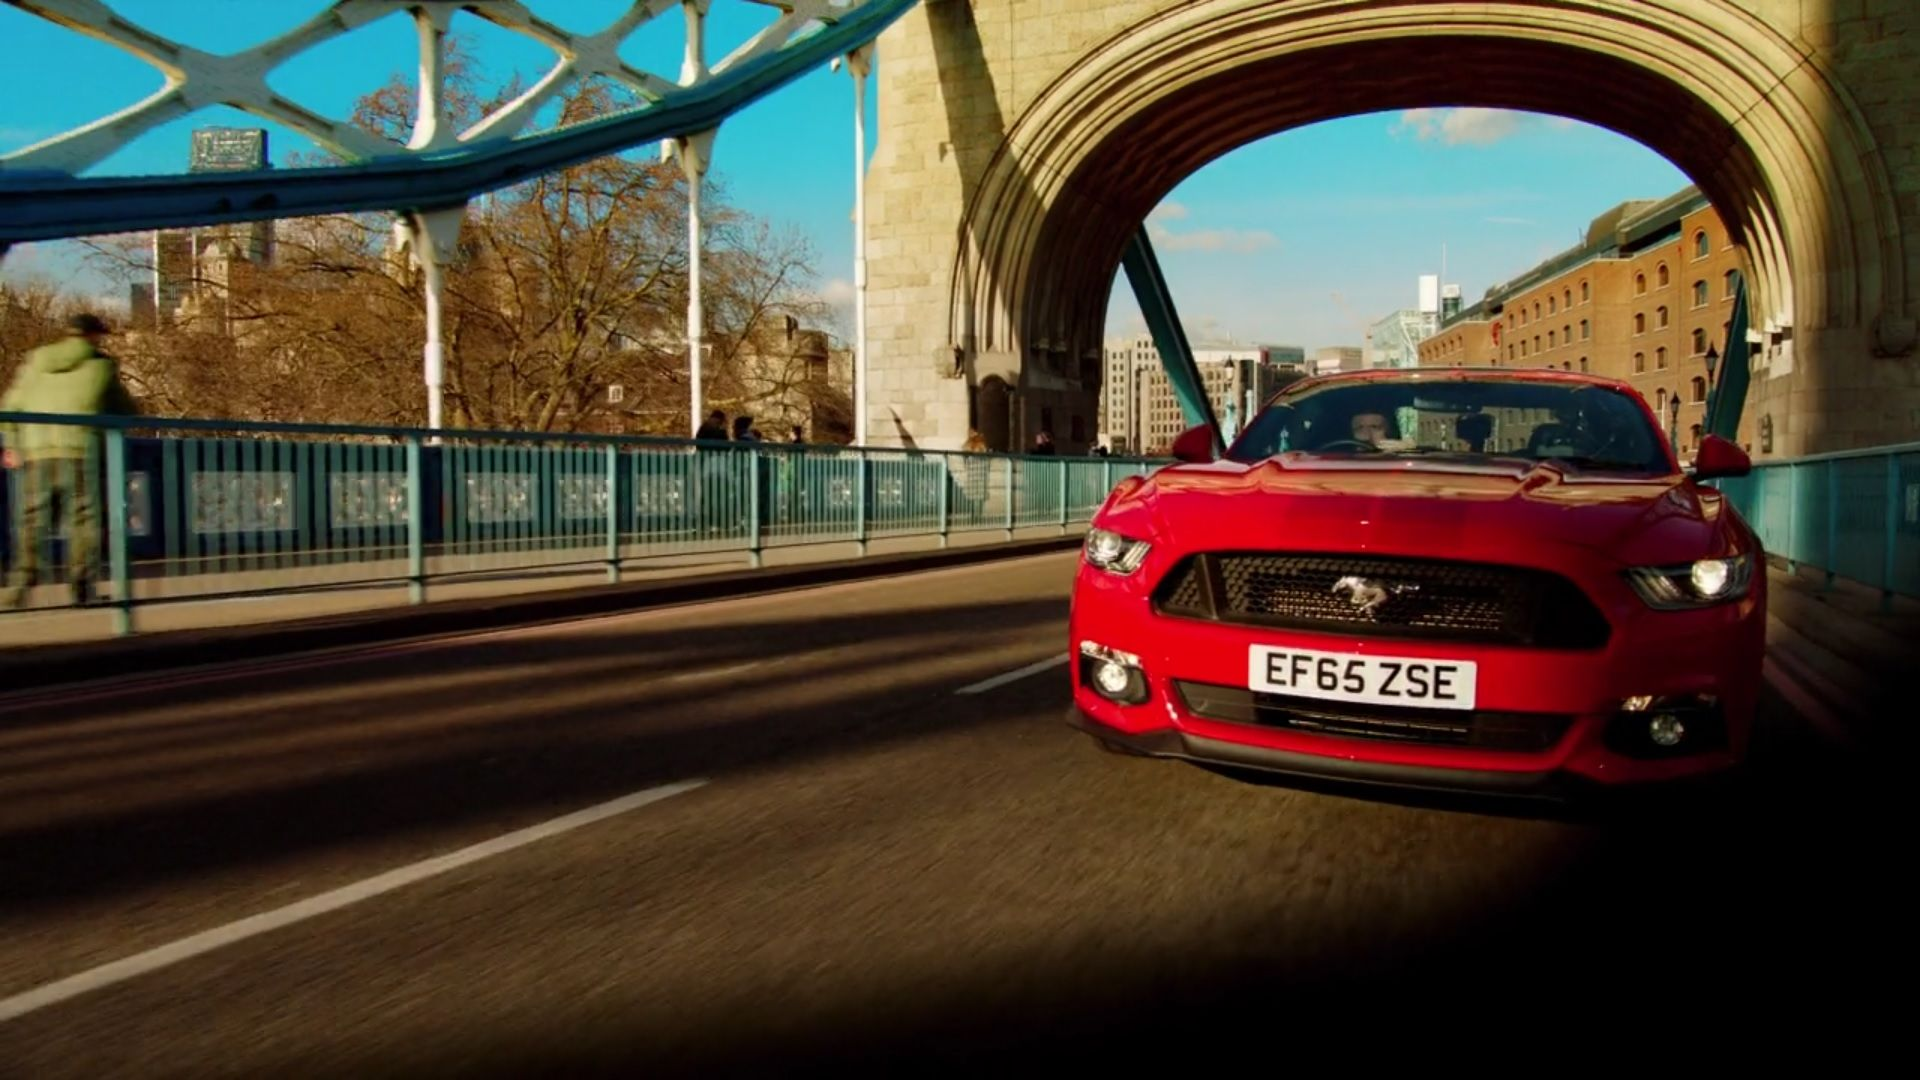 Right hand drive ford mustang on tower bridge london england jeremy clarkson